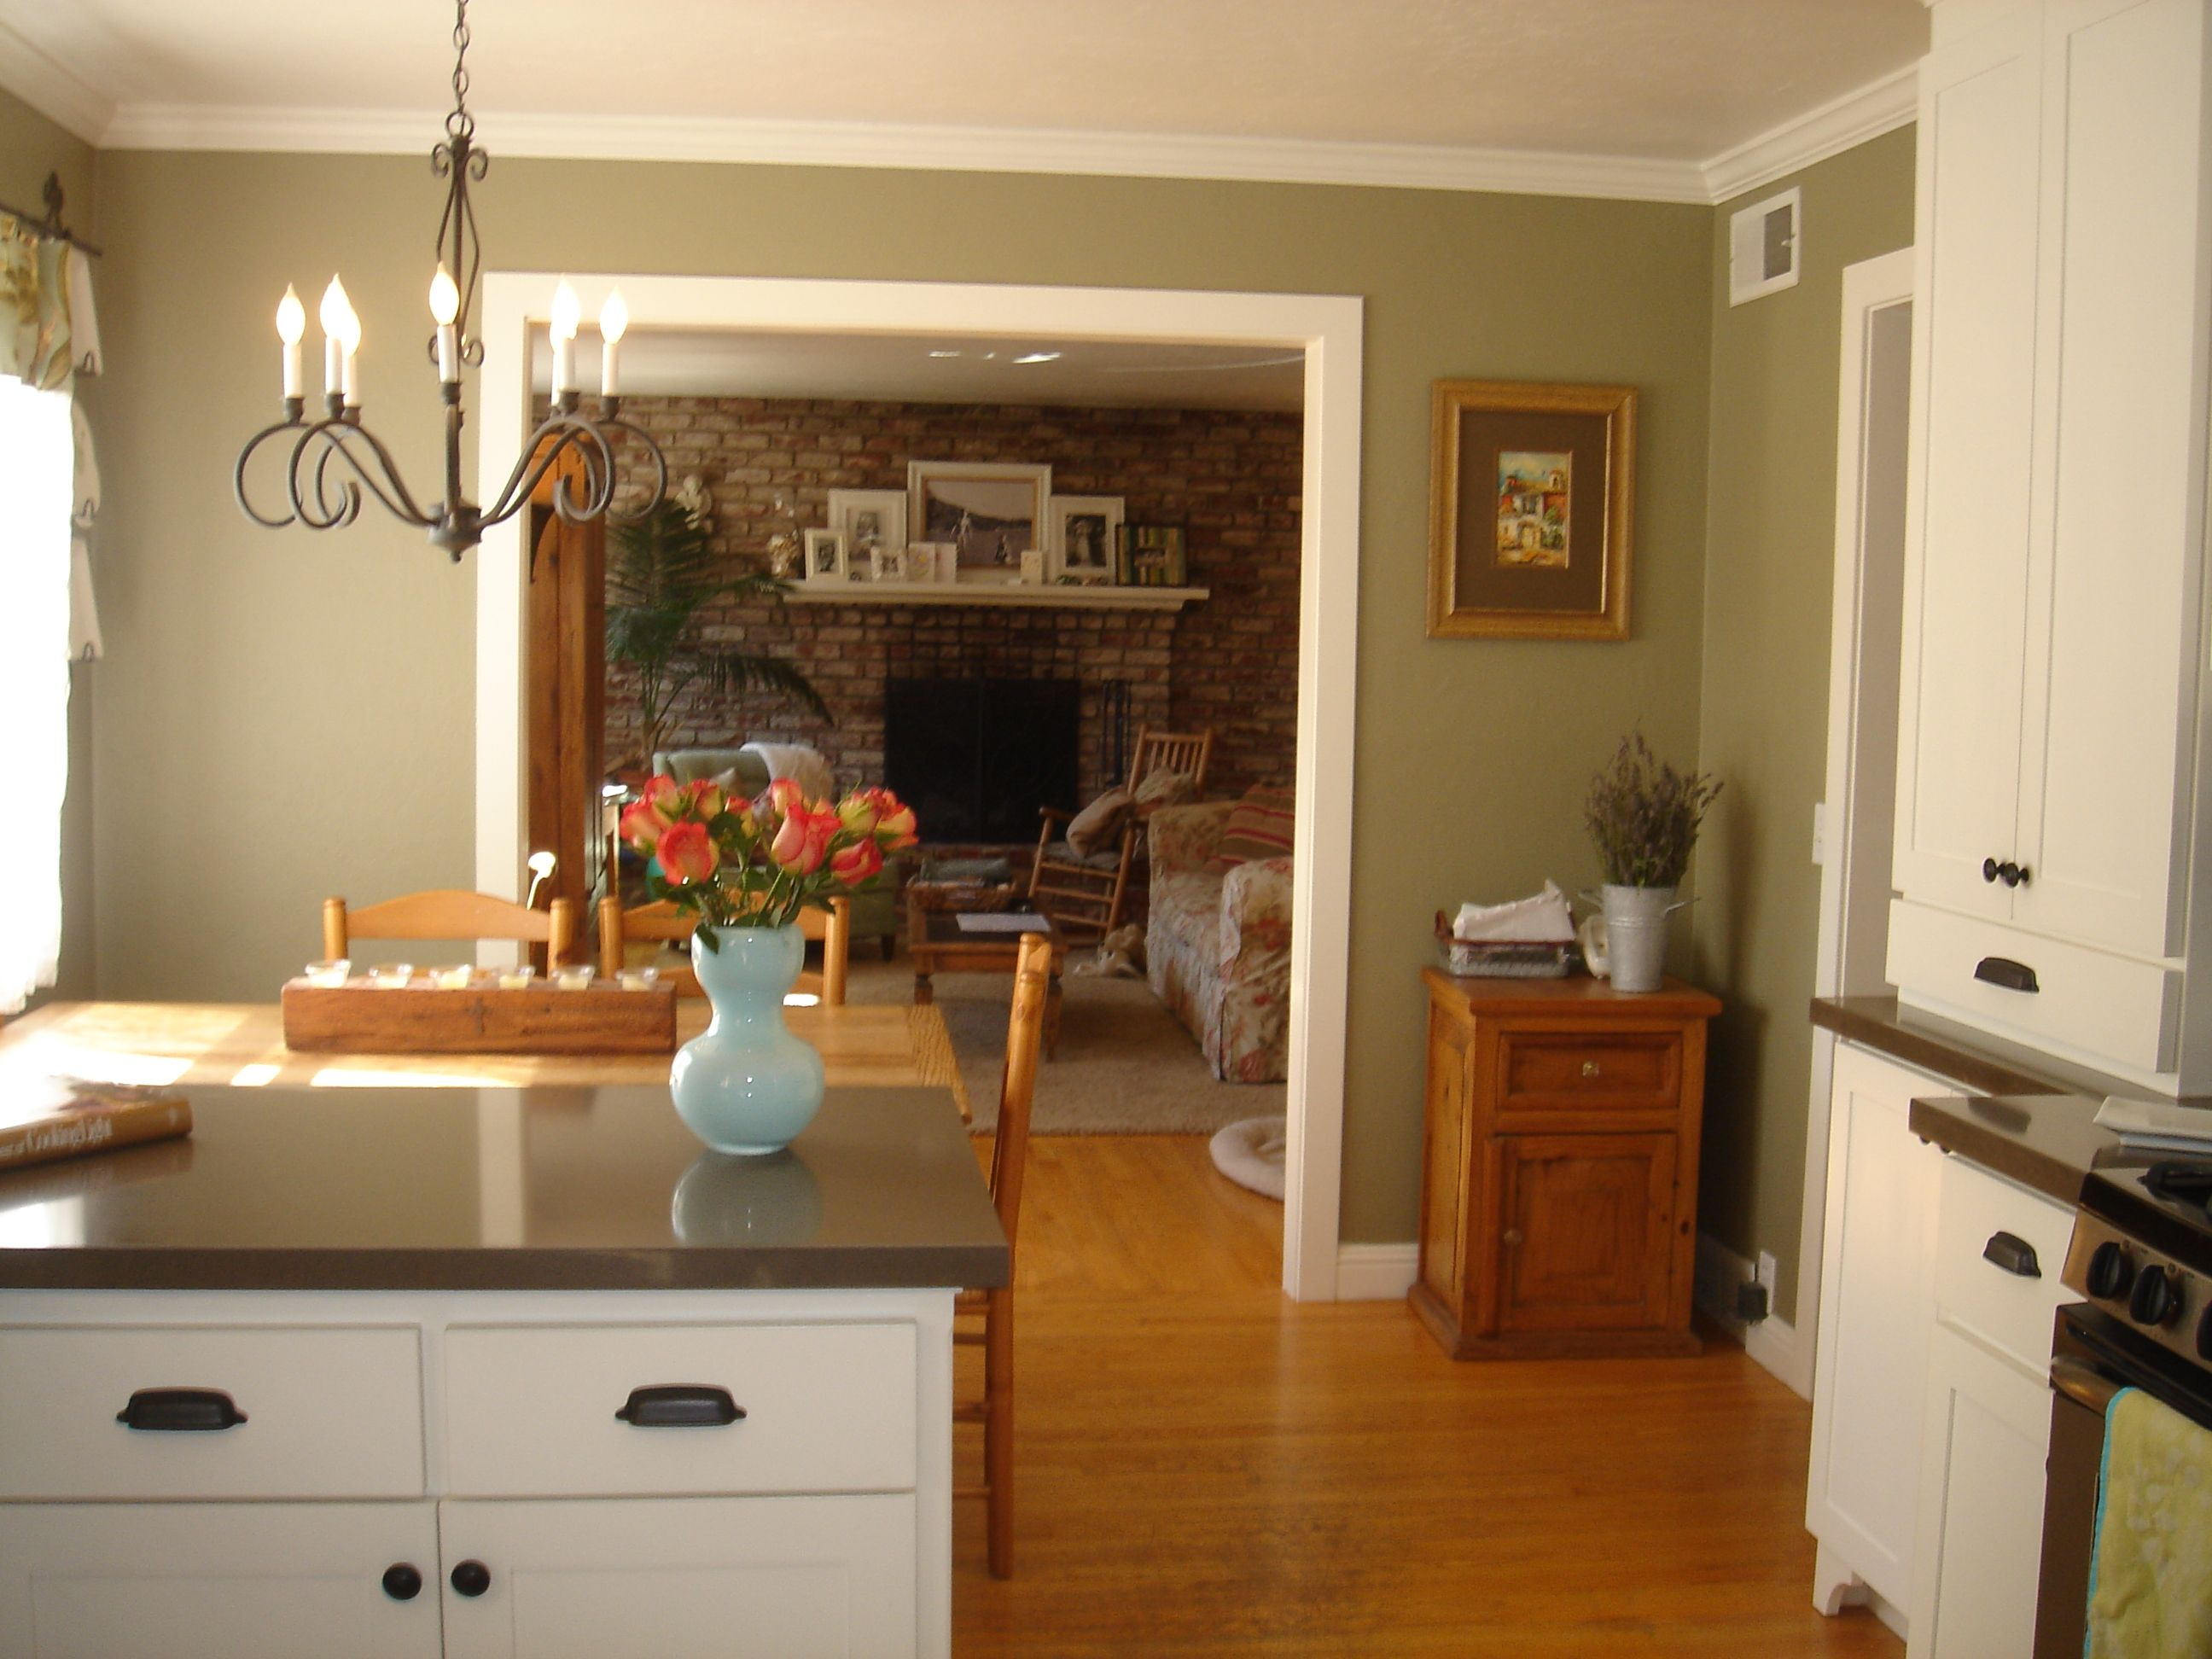 Green wall is Benjamin Moore Dry Sage. Counters are